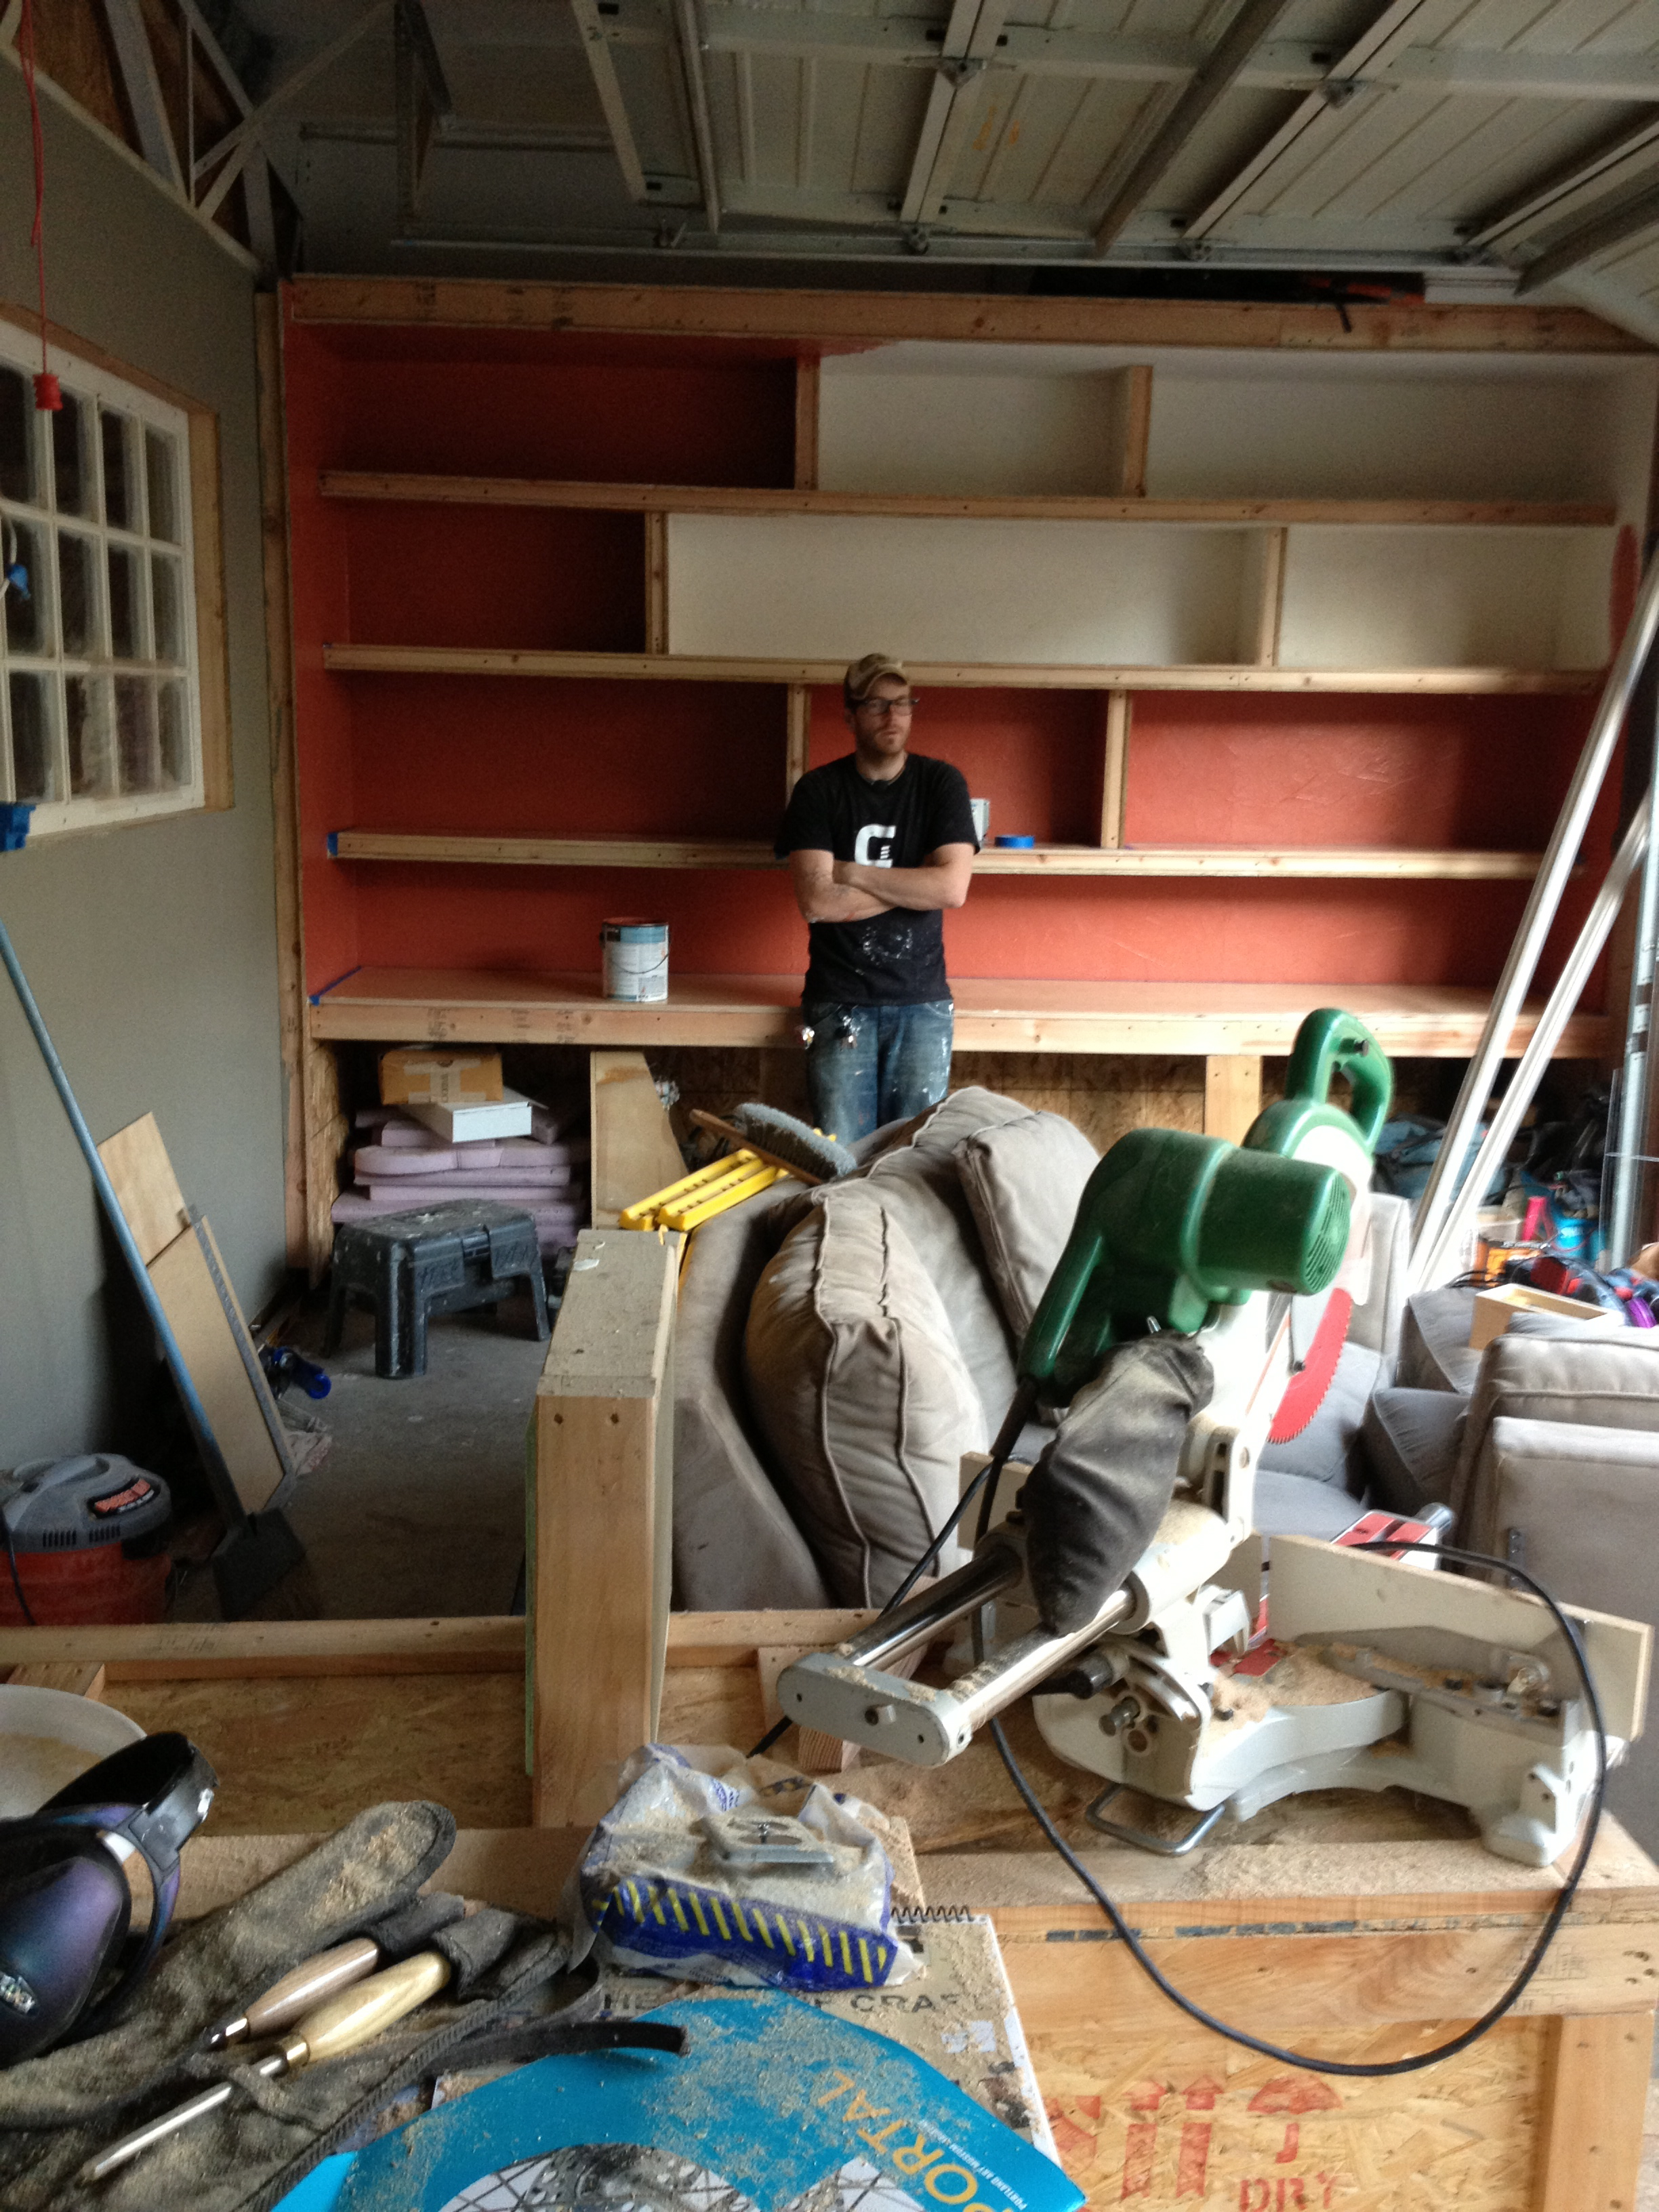 One of many build and think sessions while converting improvising a garage into a dwelling. Summer 2013